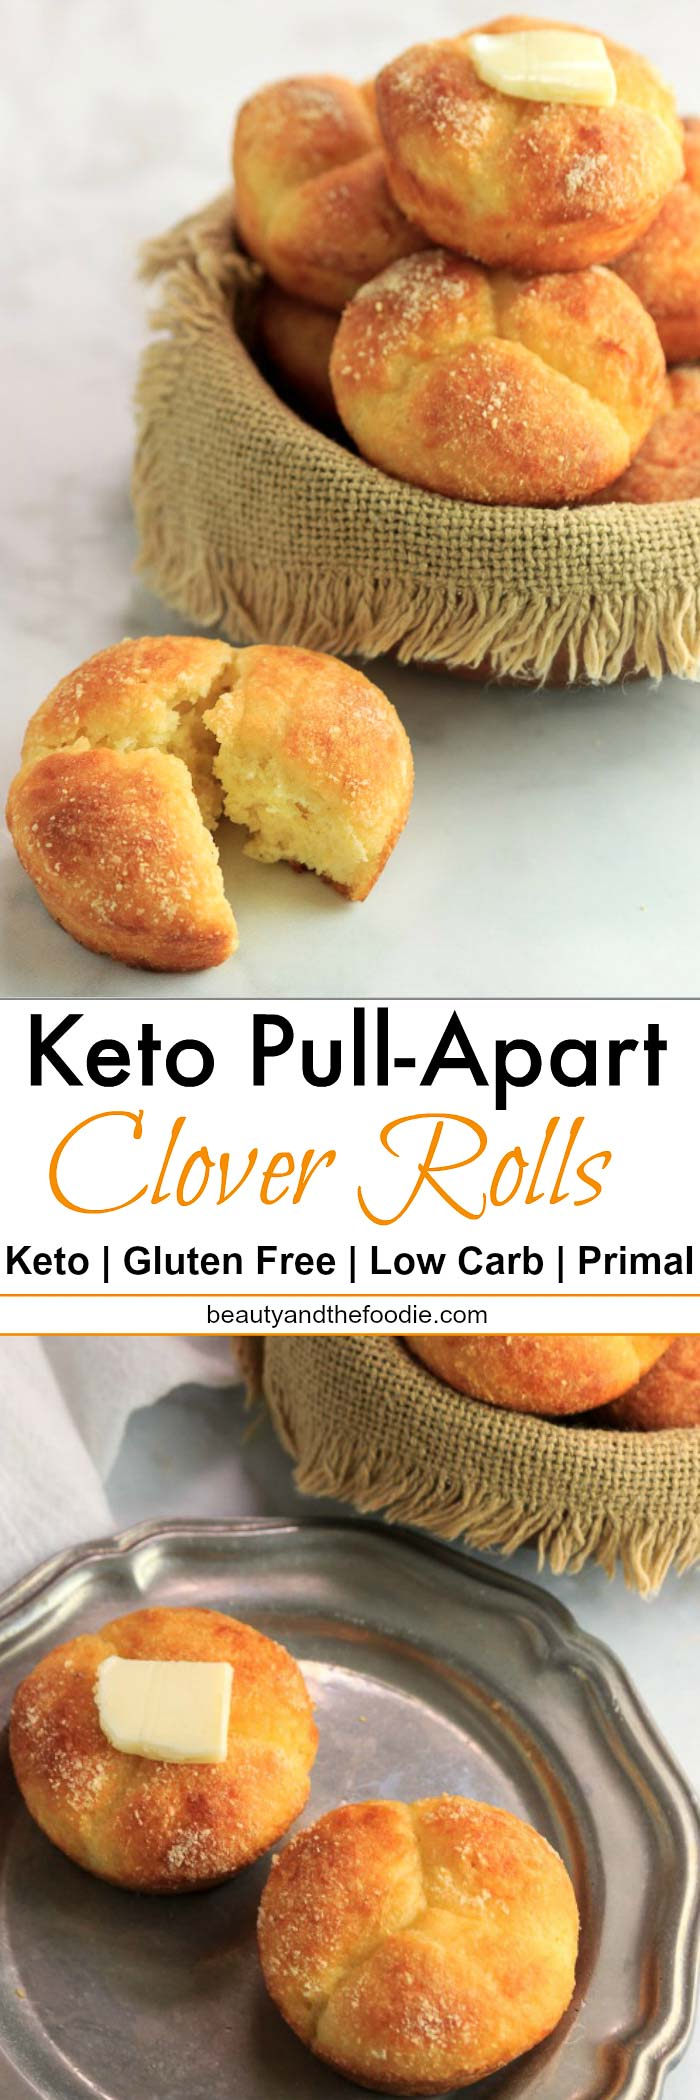 Keto Pull Apart Clover Rolls | Beauty and the Foodie